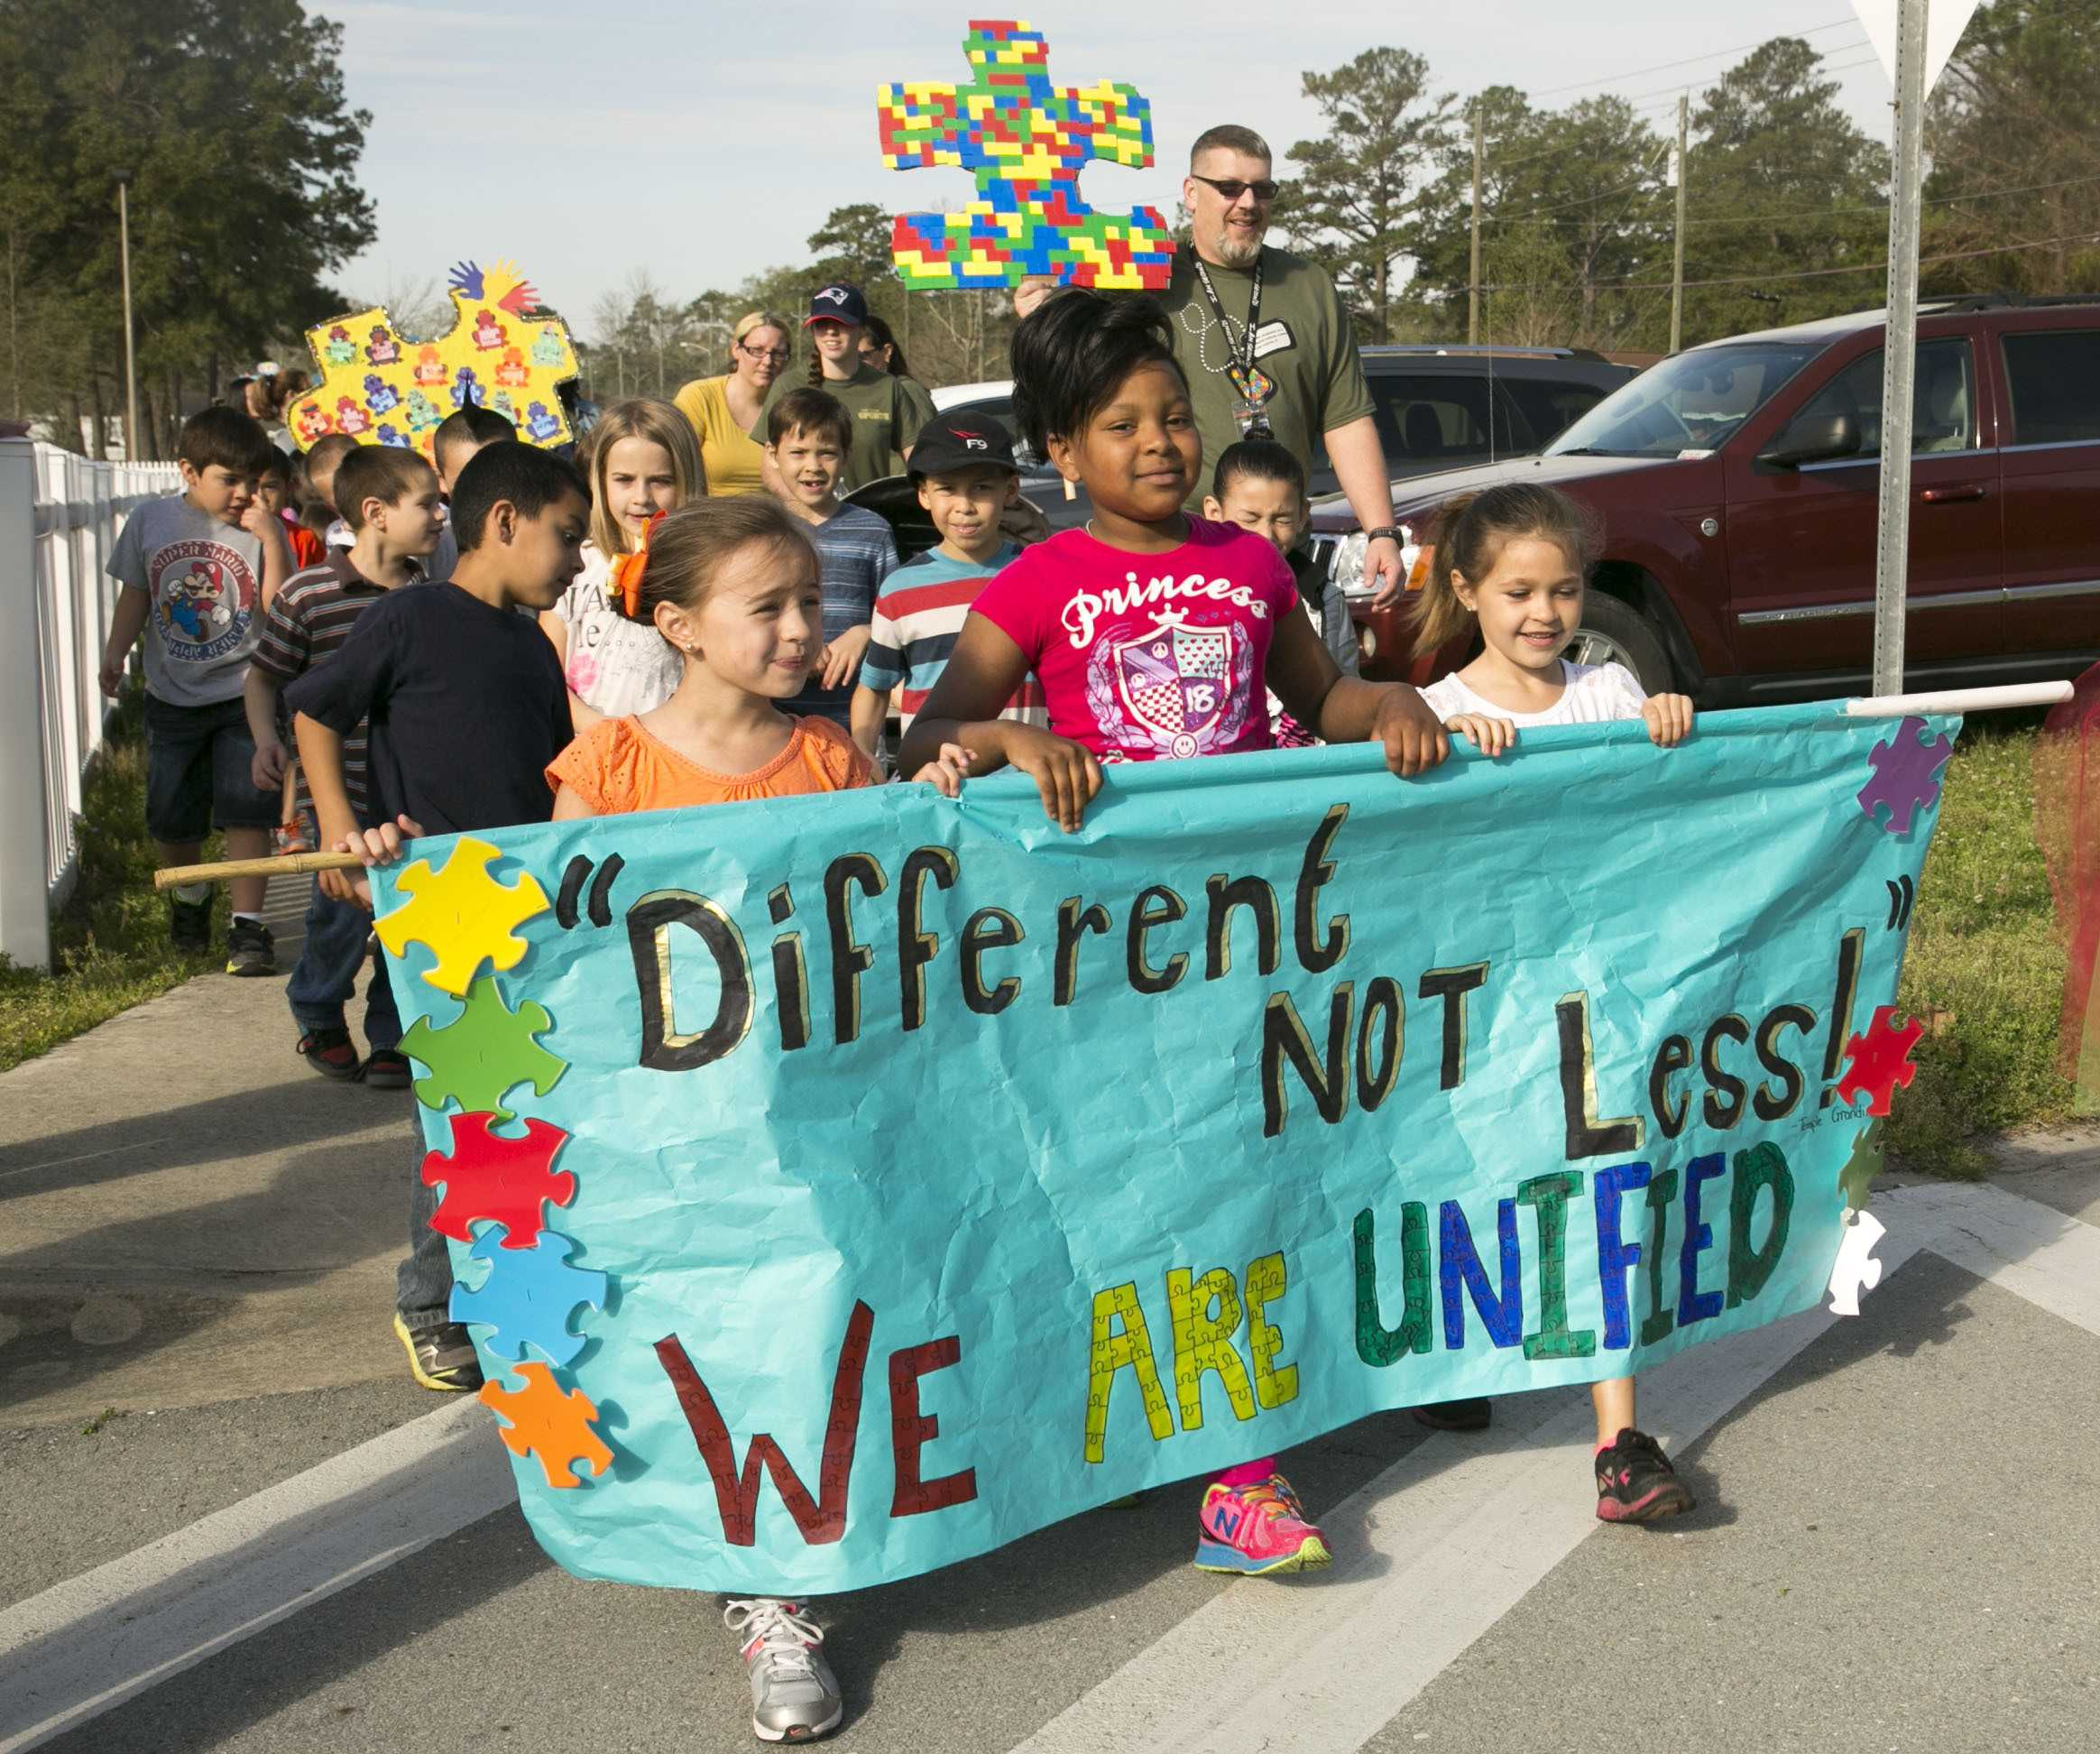 Students and family members from Johnson Primary School march, holding signs and banners in support of autism awareness aboard Marine Corps Base Camp Lejeune, Friday. According to the center for disease control and prevention, one in every 68 children in the U.S. is diagnosed with the disorder. (Photo by: Lance Cpl. Andrea Ovalle)